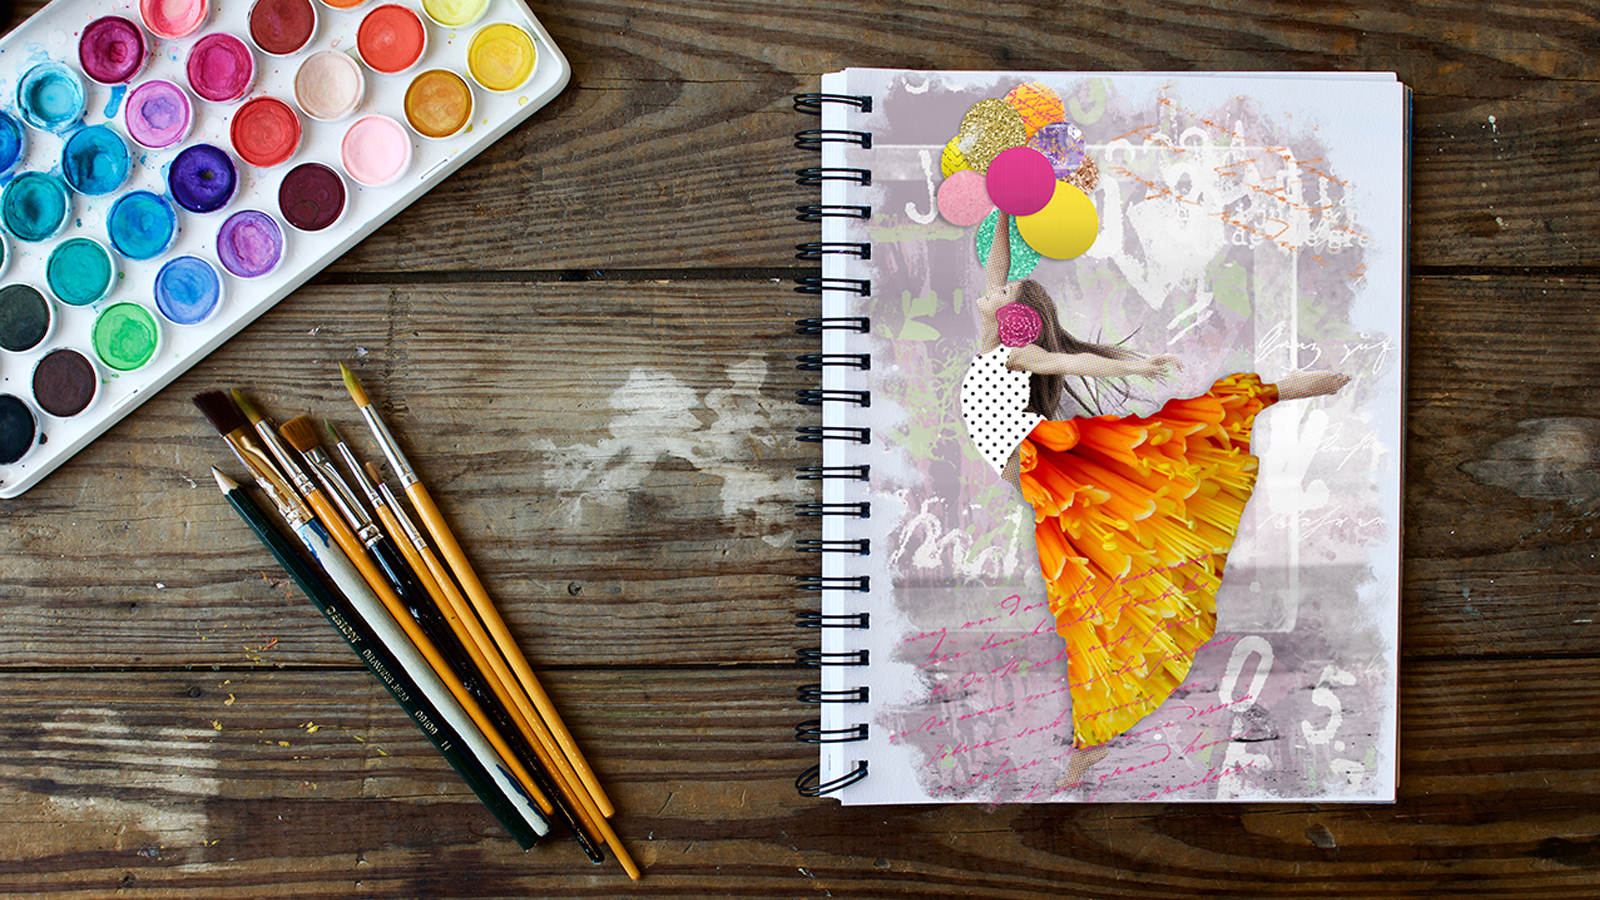 Creating Mixed Media Art in Photoshop® with Khara Plicanic